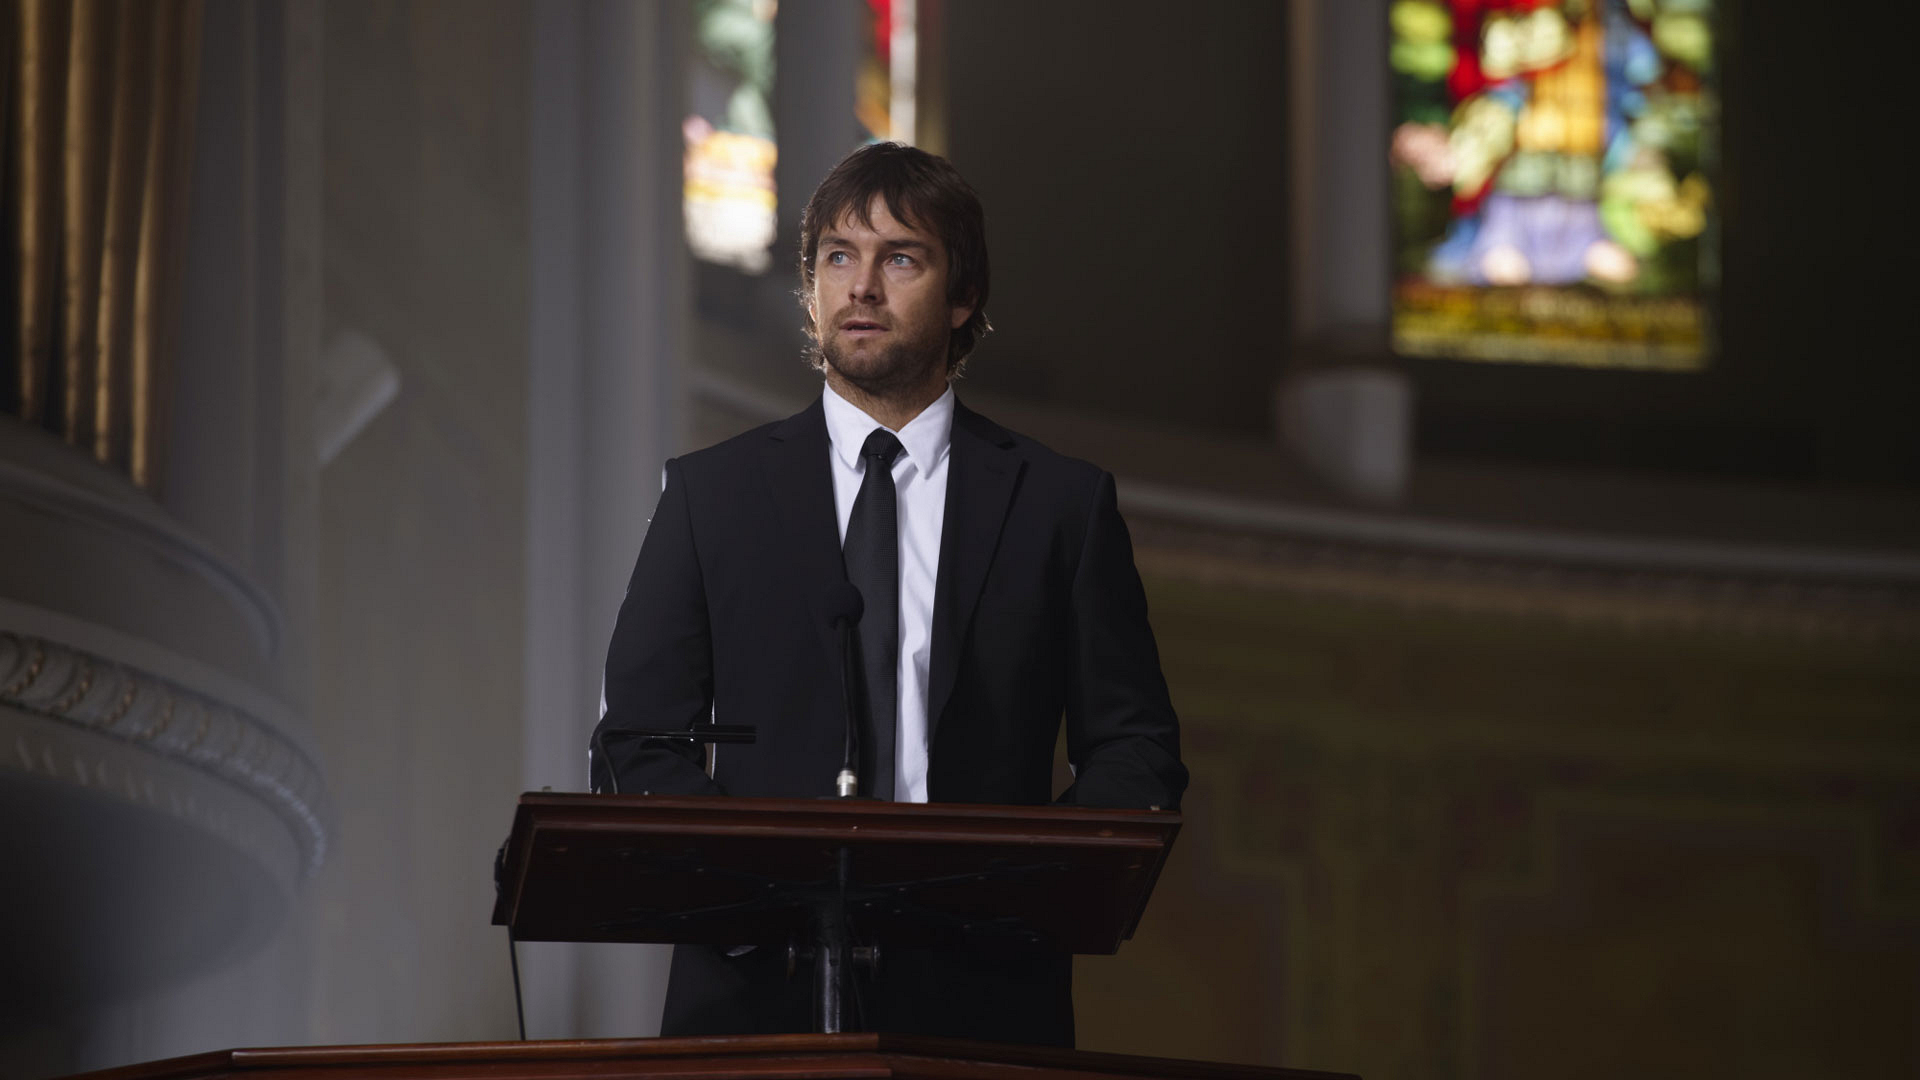 Garrett speaks at his father's funeral.